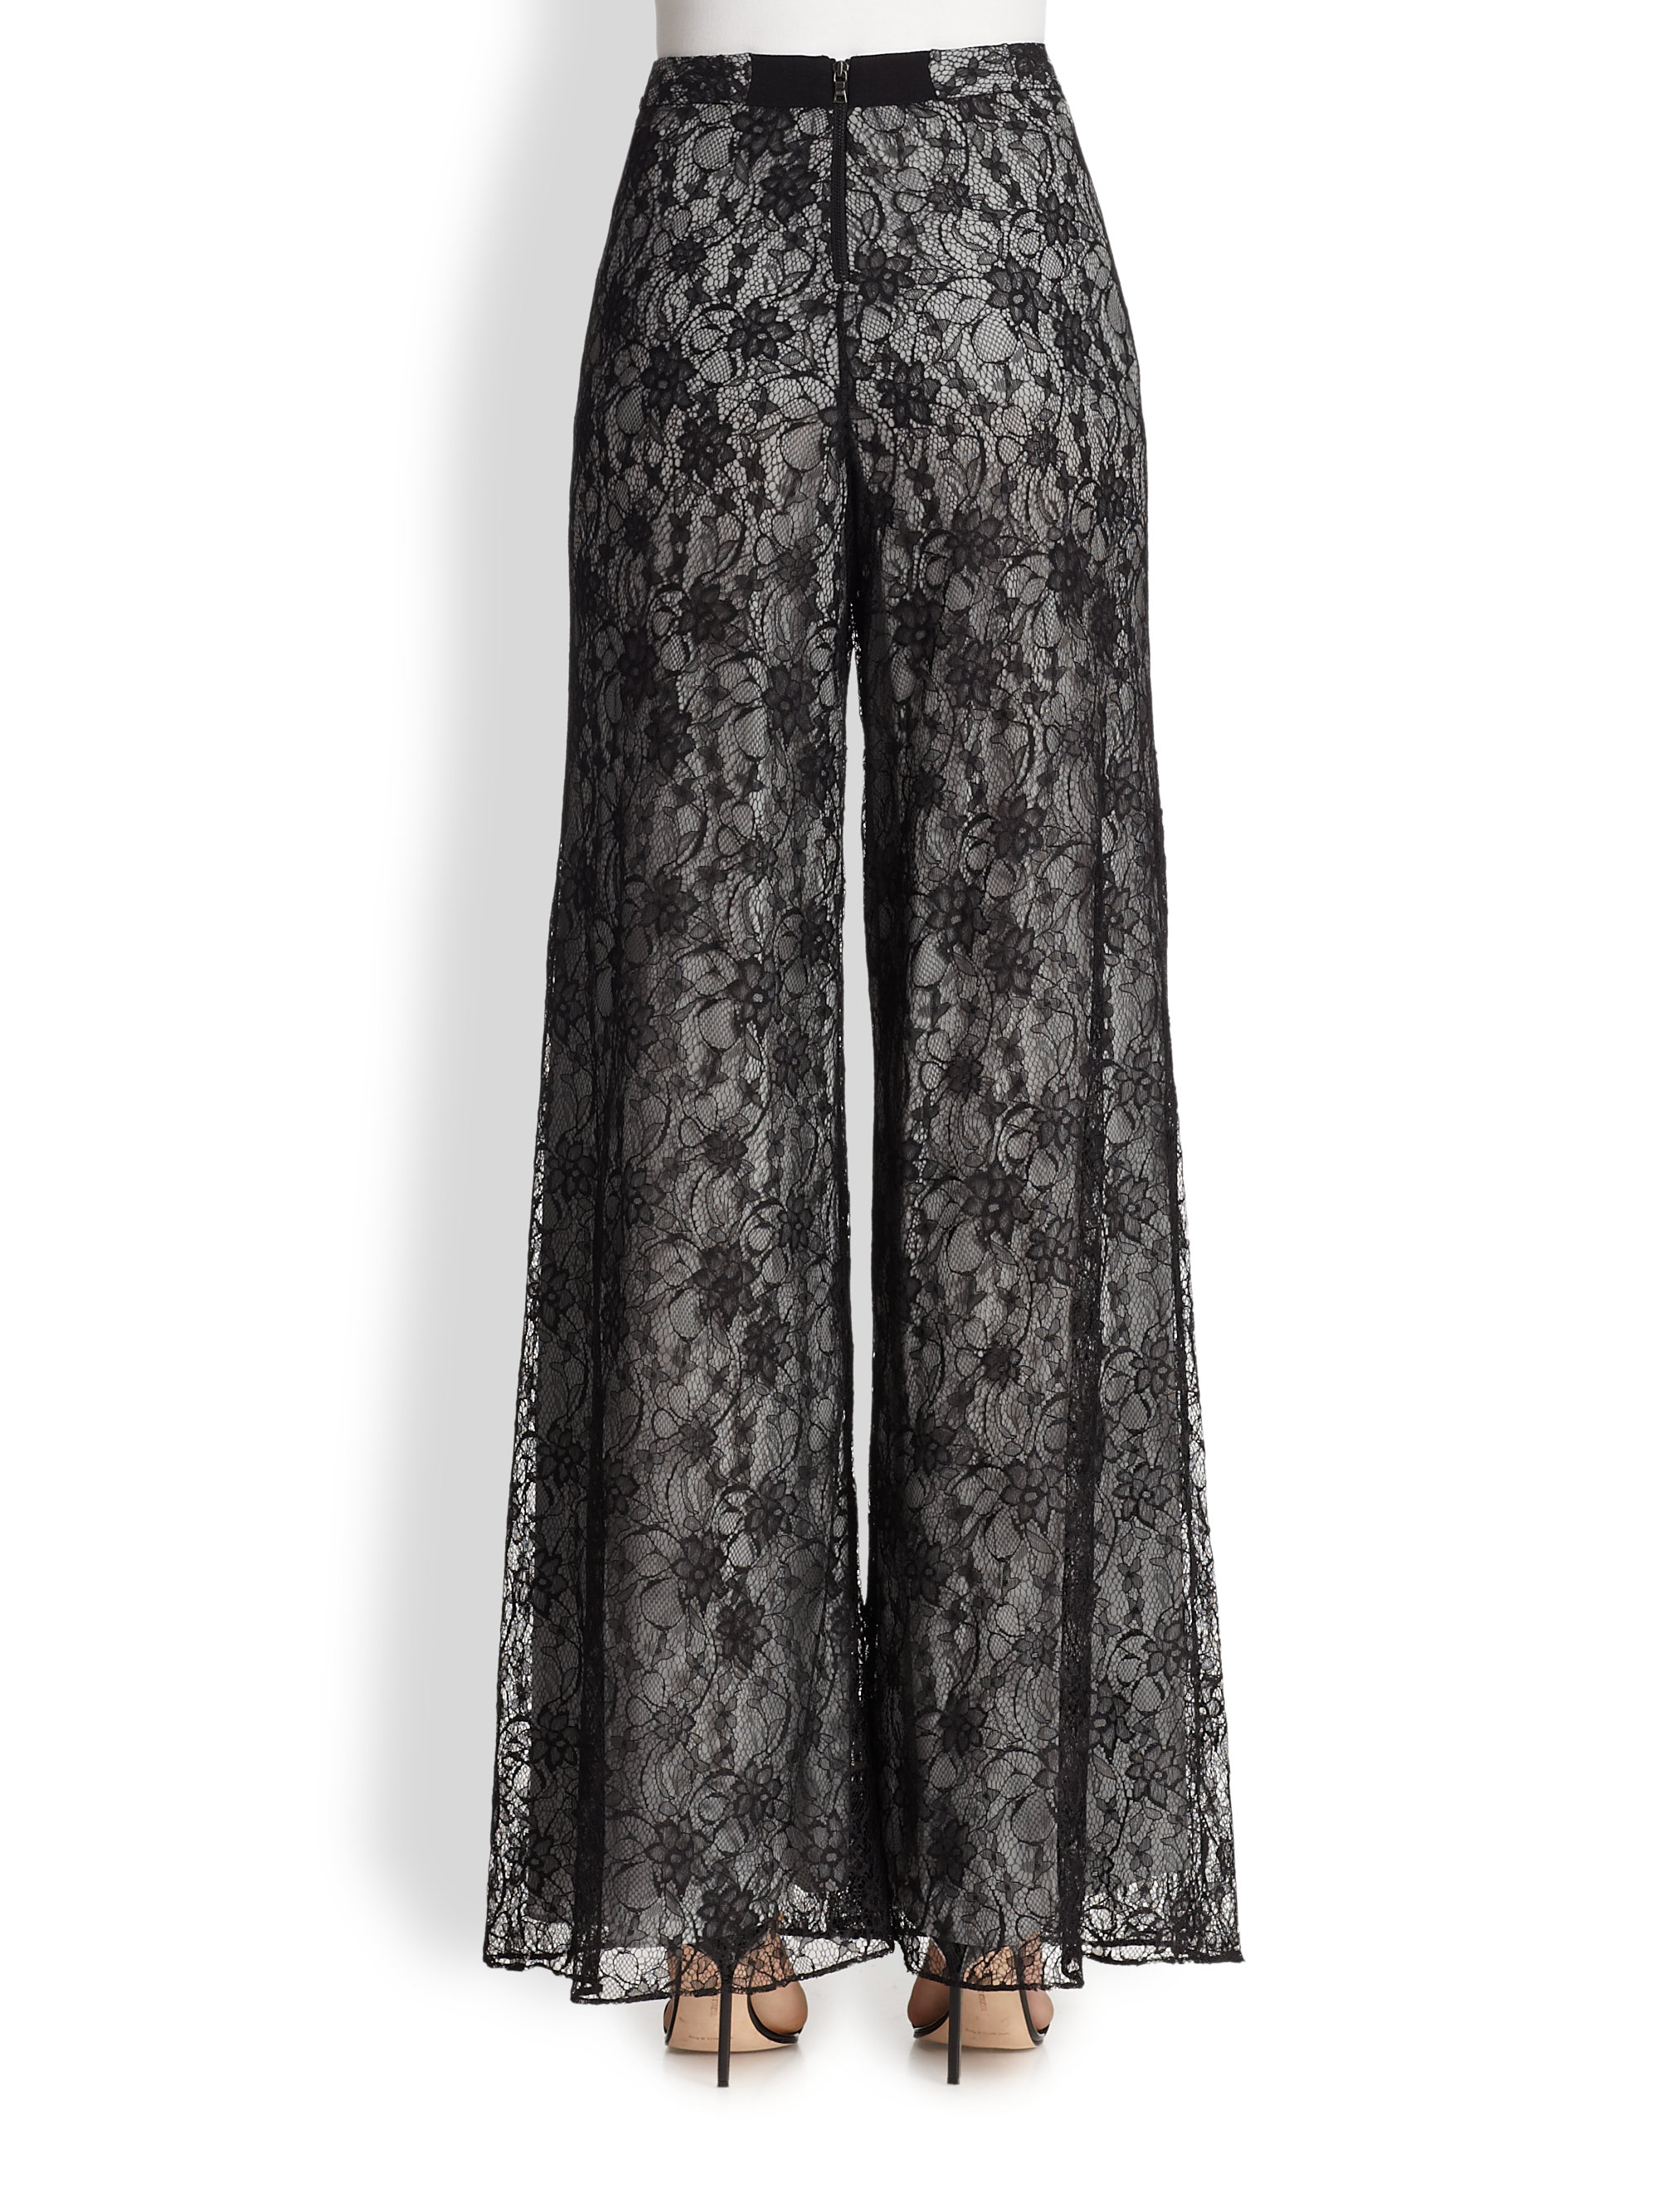 Alice   olivia Super Flared Wide-Leg Lace Pants in Black | Lyst